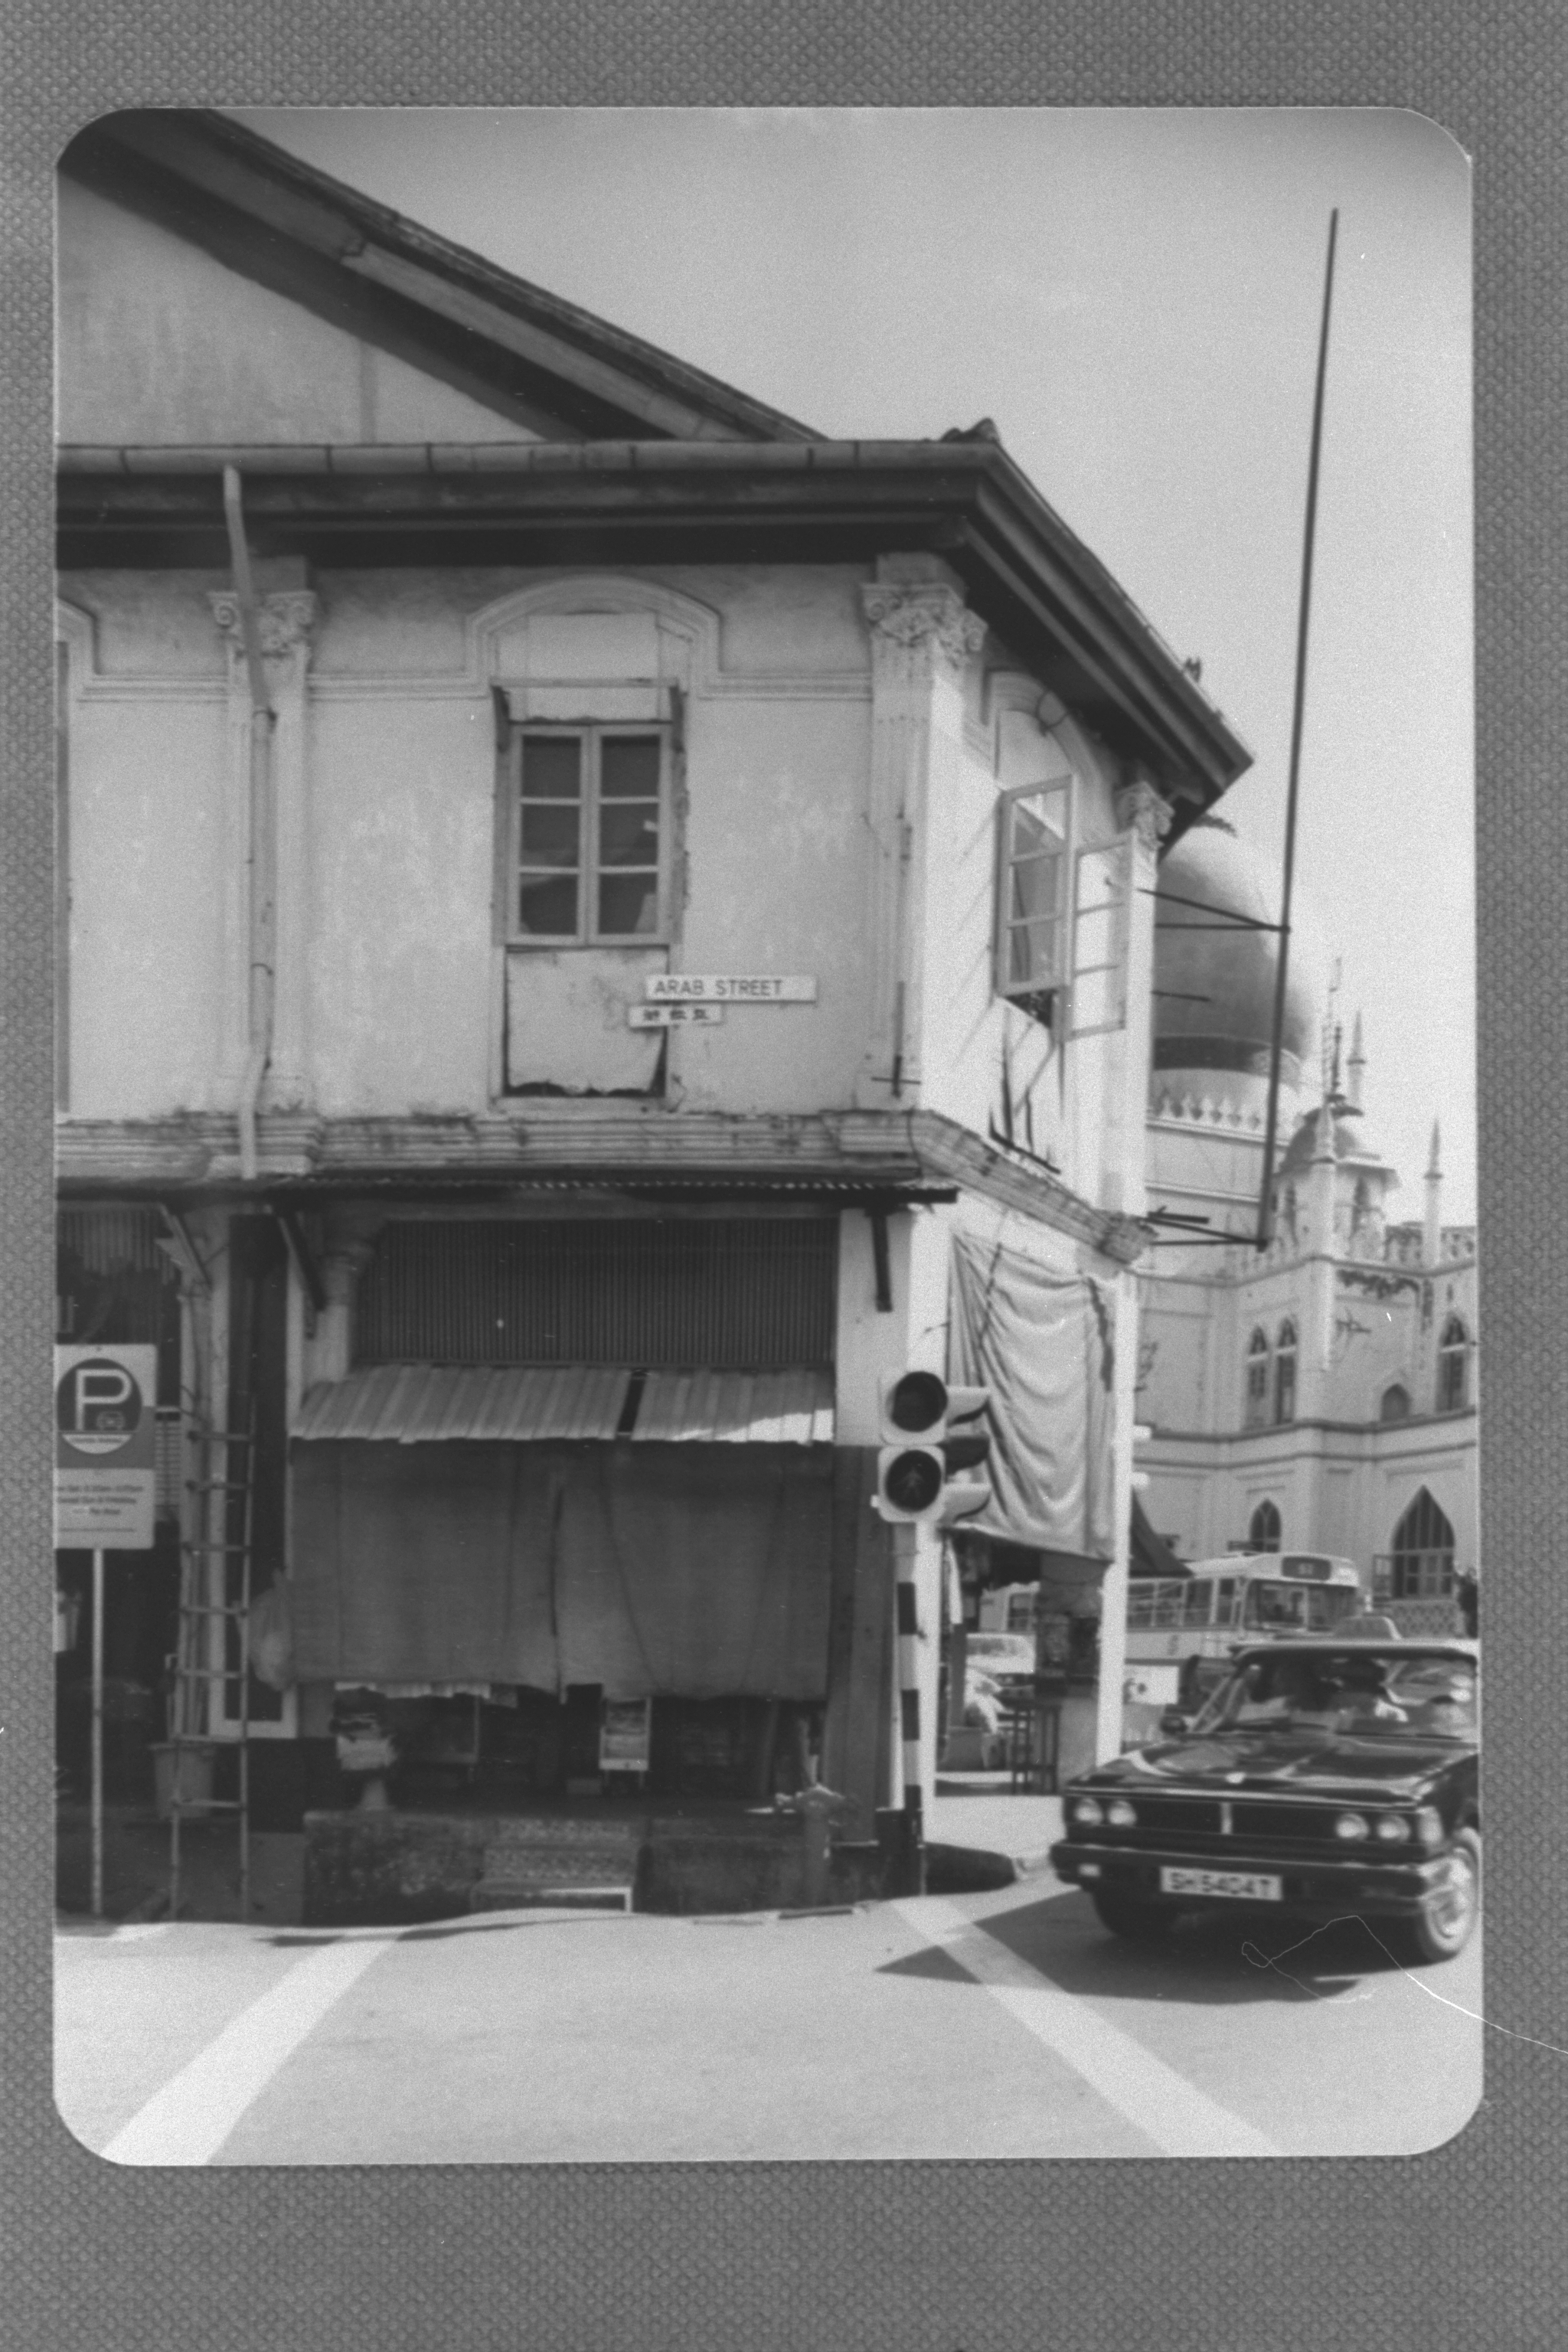 Shophouse along Arab Street at the junction of North Bridge Road, 1985. URA Collection, courtesy of National Archives of Singapore